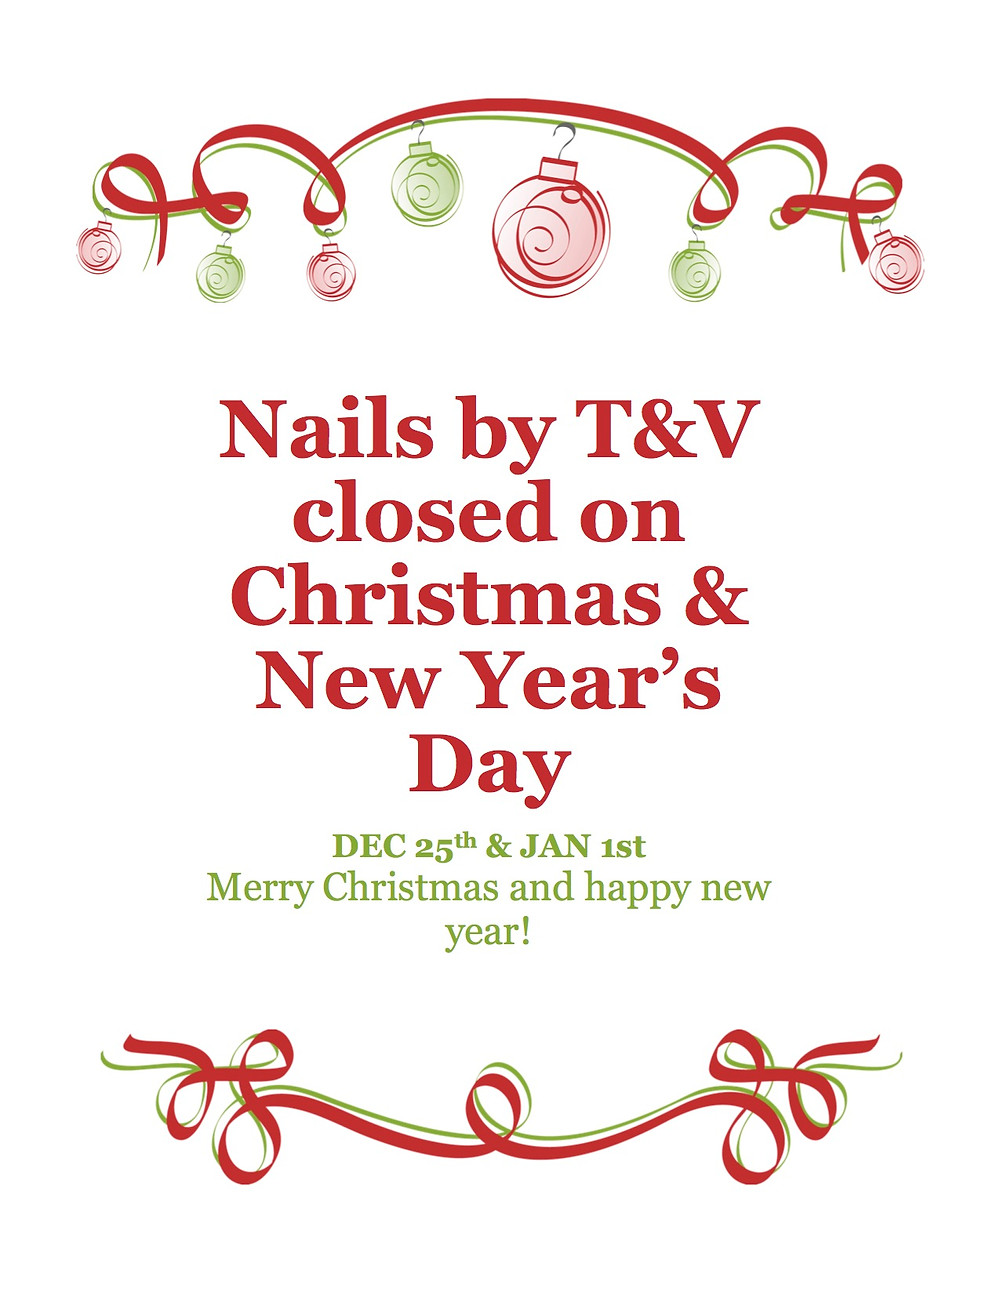 Happy holidays! Thank your for all of the love and support. Merry Christmas and Happy New Year from our Nails By T&V family to yours.